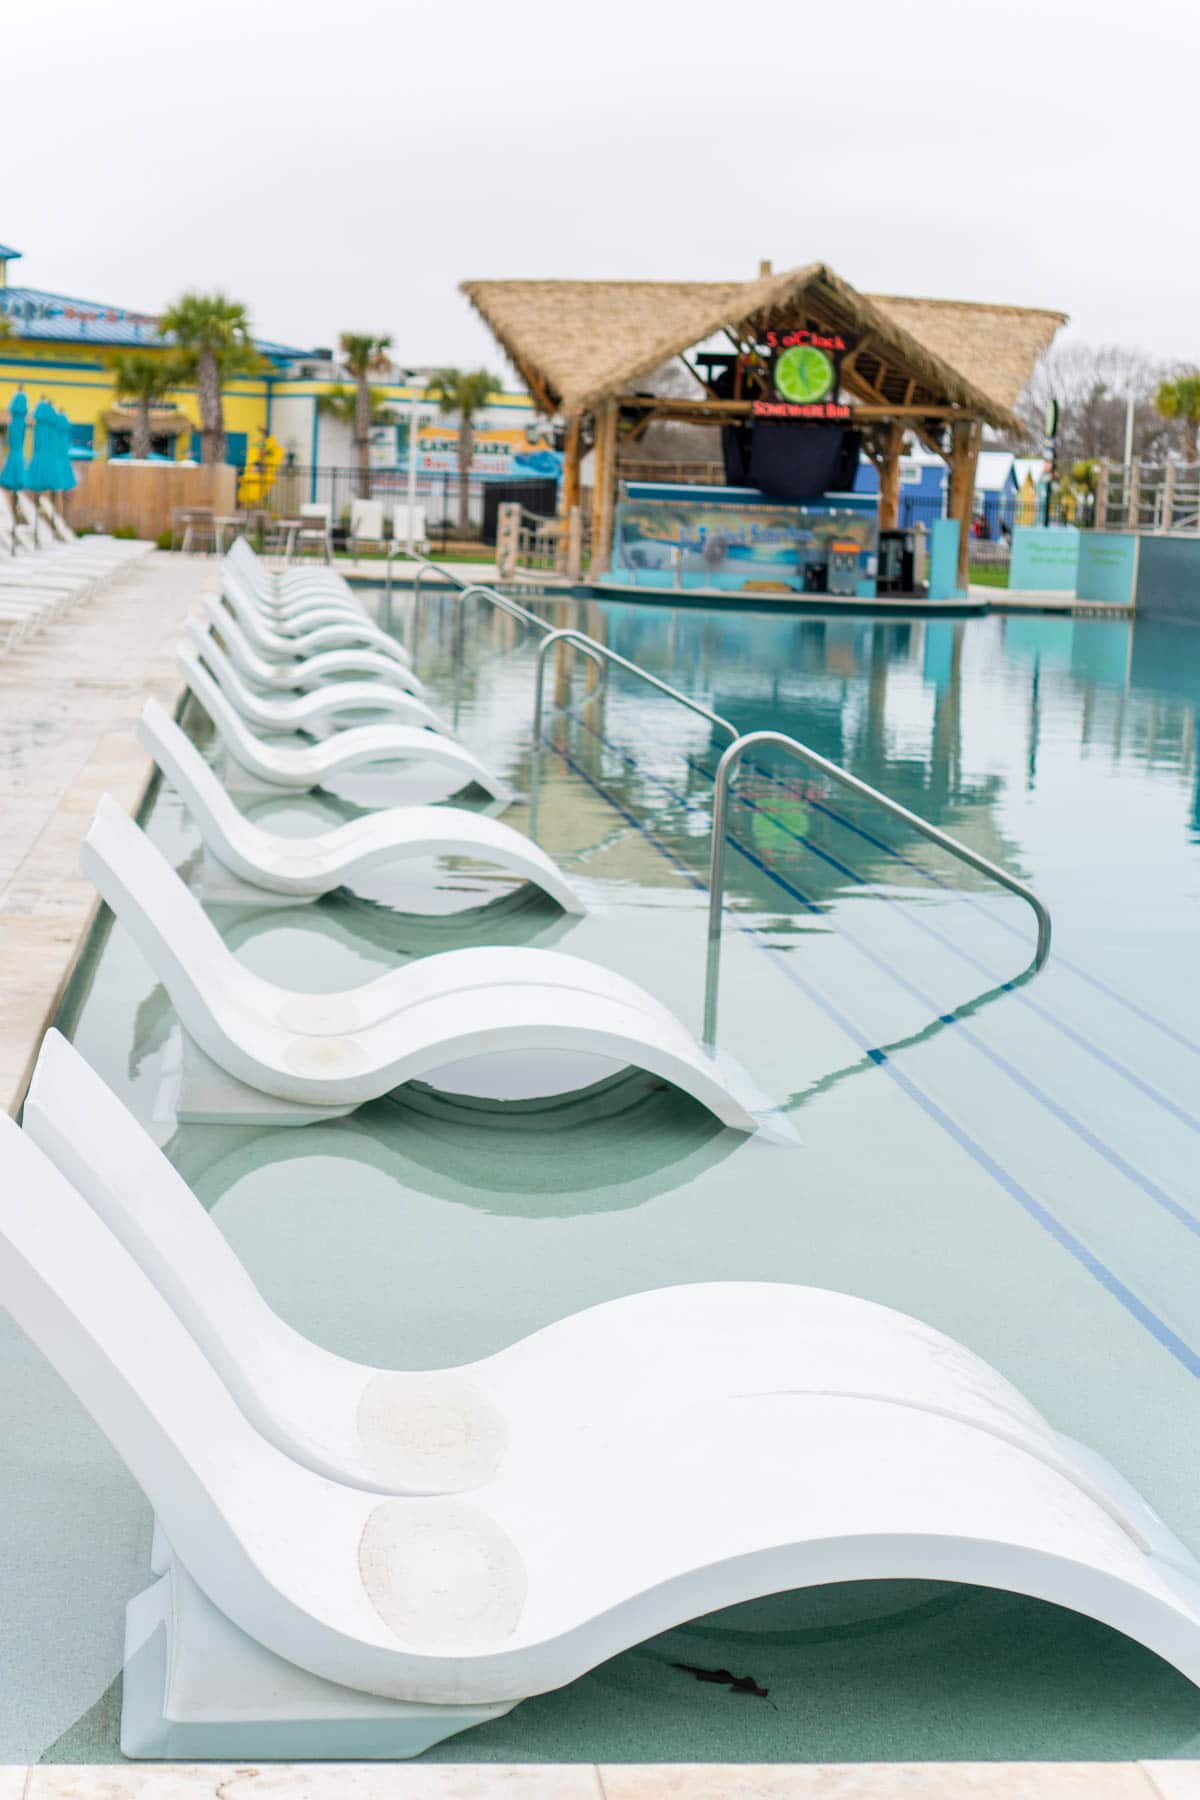 Chairs by a pool at Margaritaville Lake Conroe